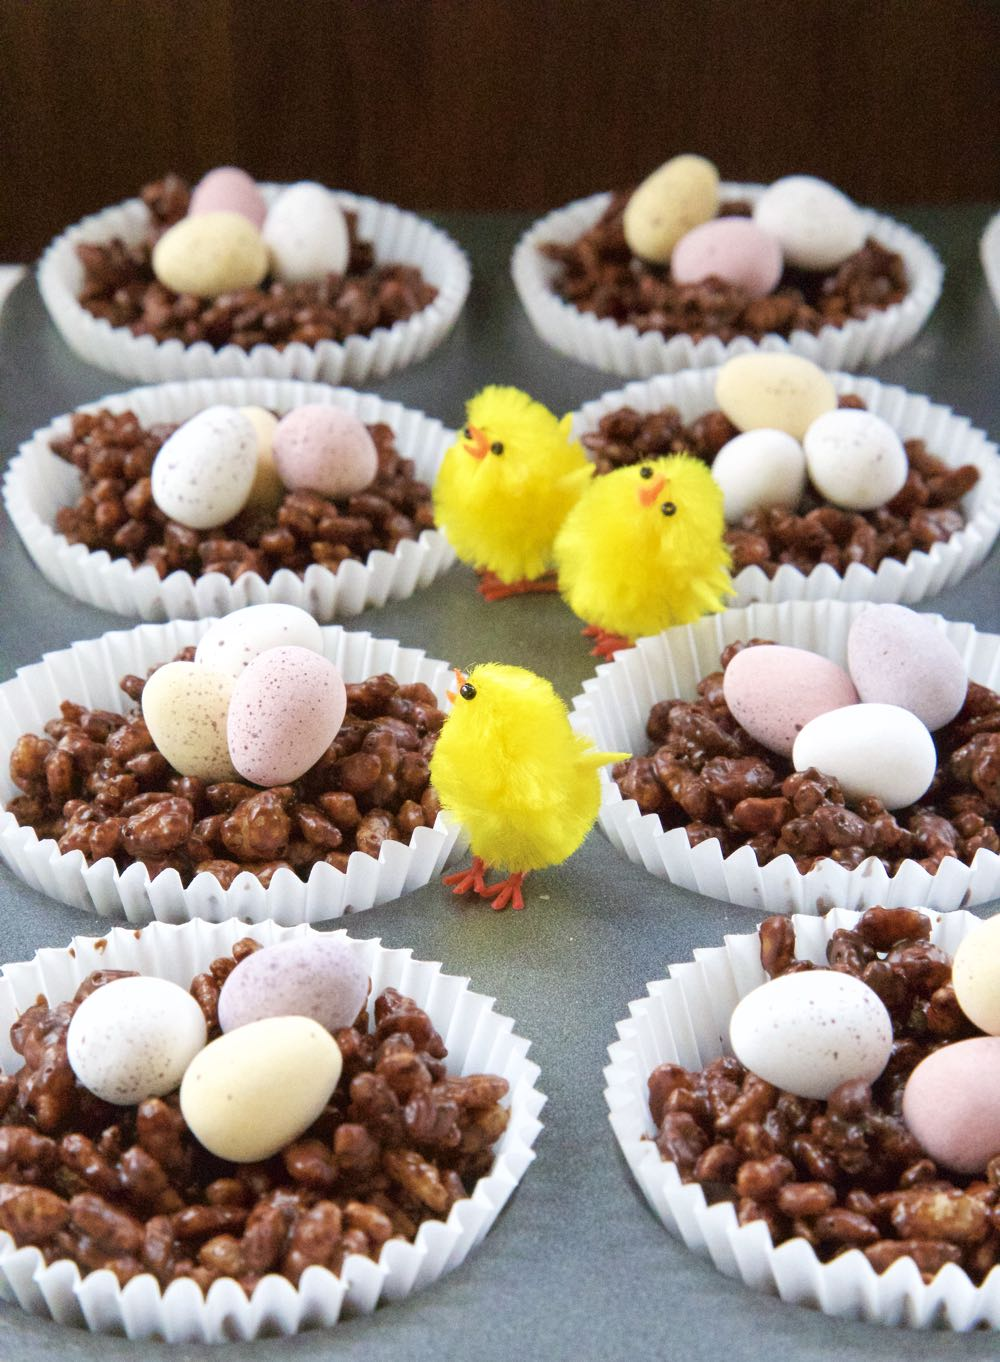 Chocolate Crispie Cakes and Easter Chicks.